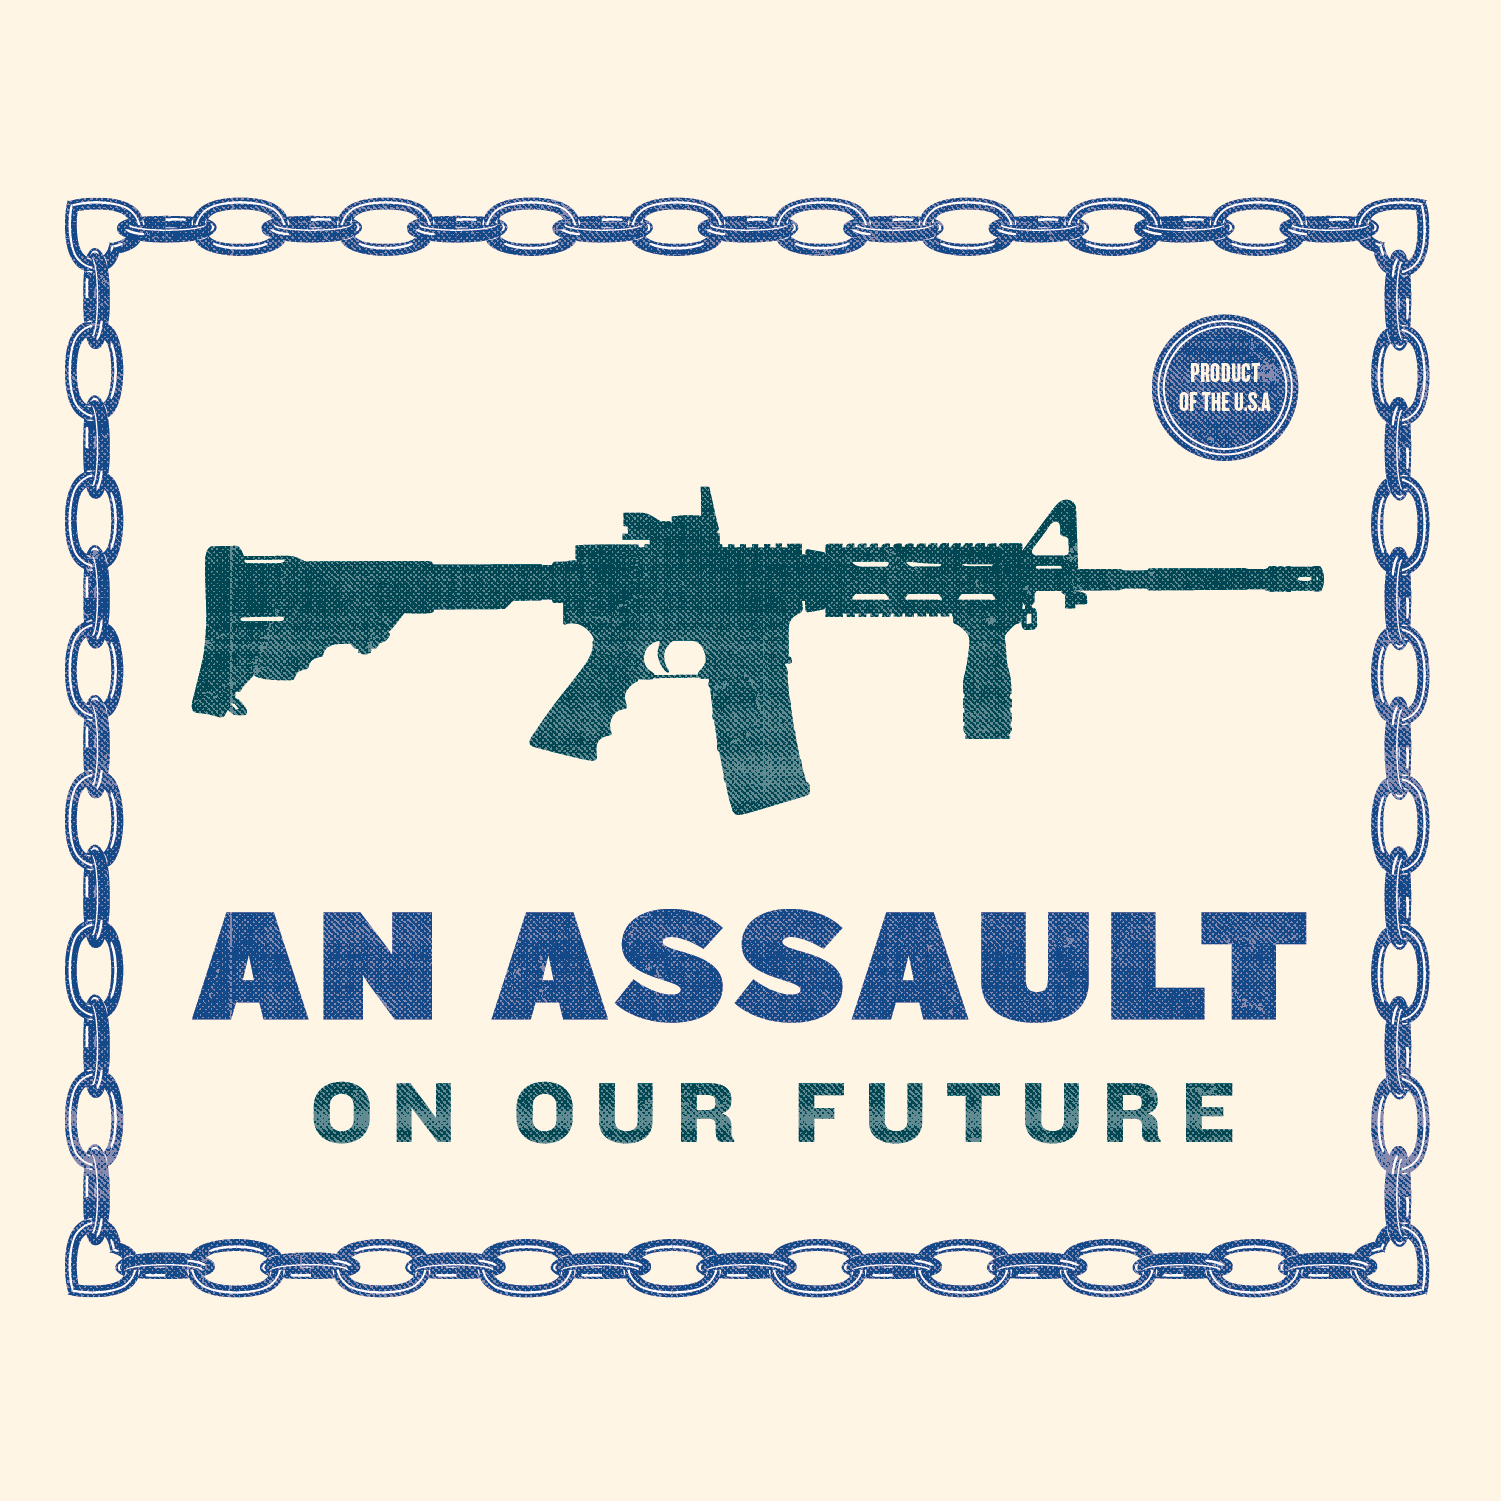 AssaultOnOurFuture-Square.jpg